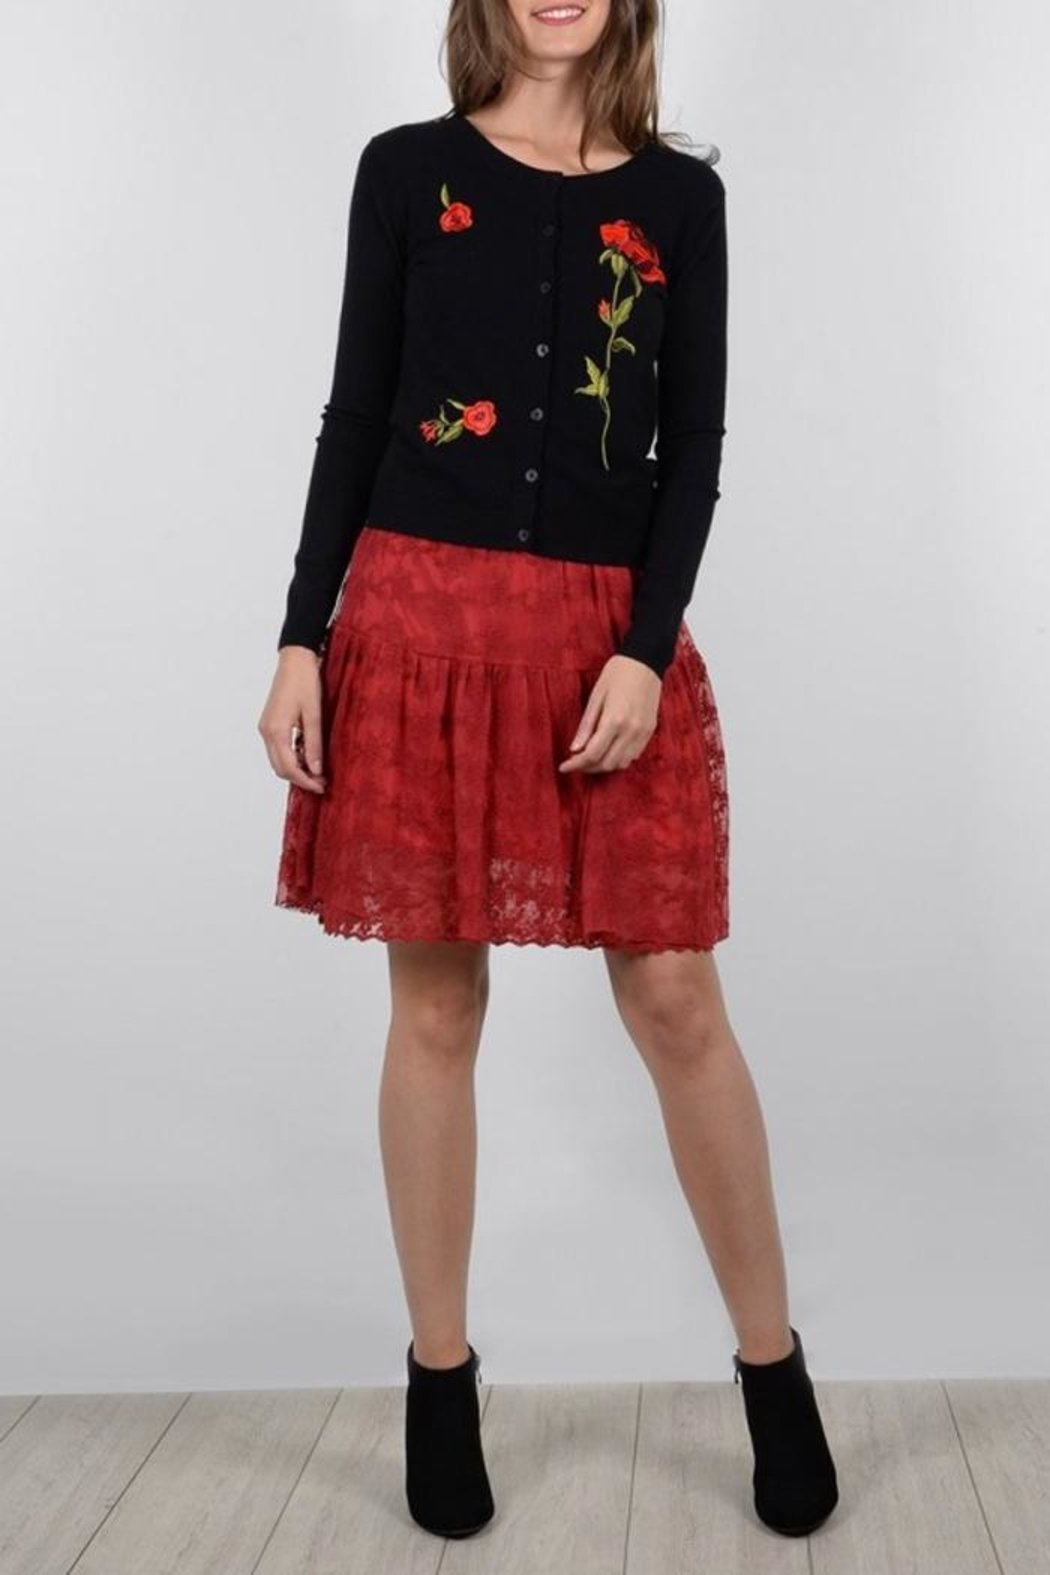 Molly Bracken Rose Embroidered Cardigan - Main Image